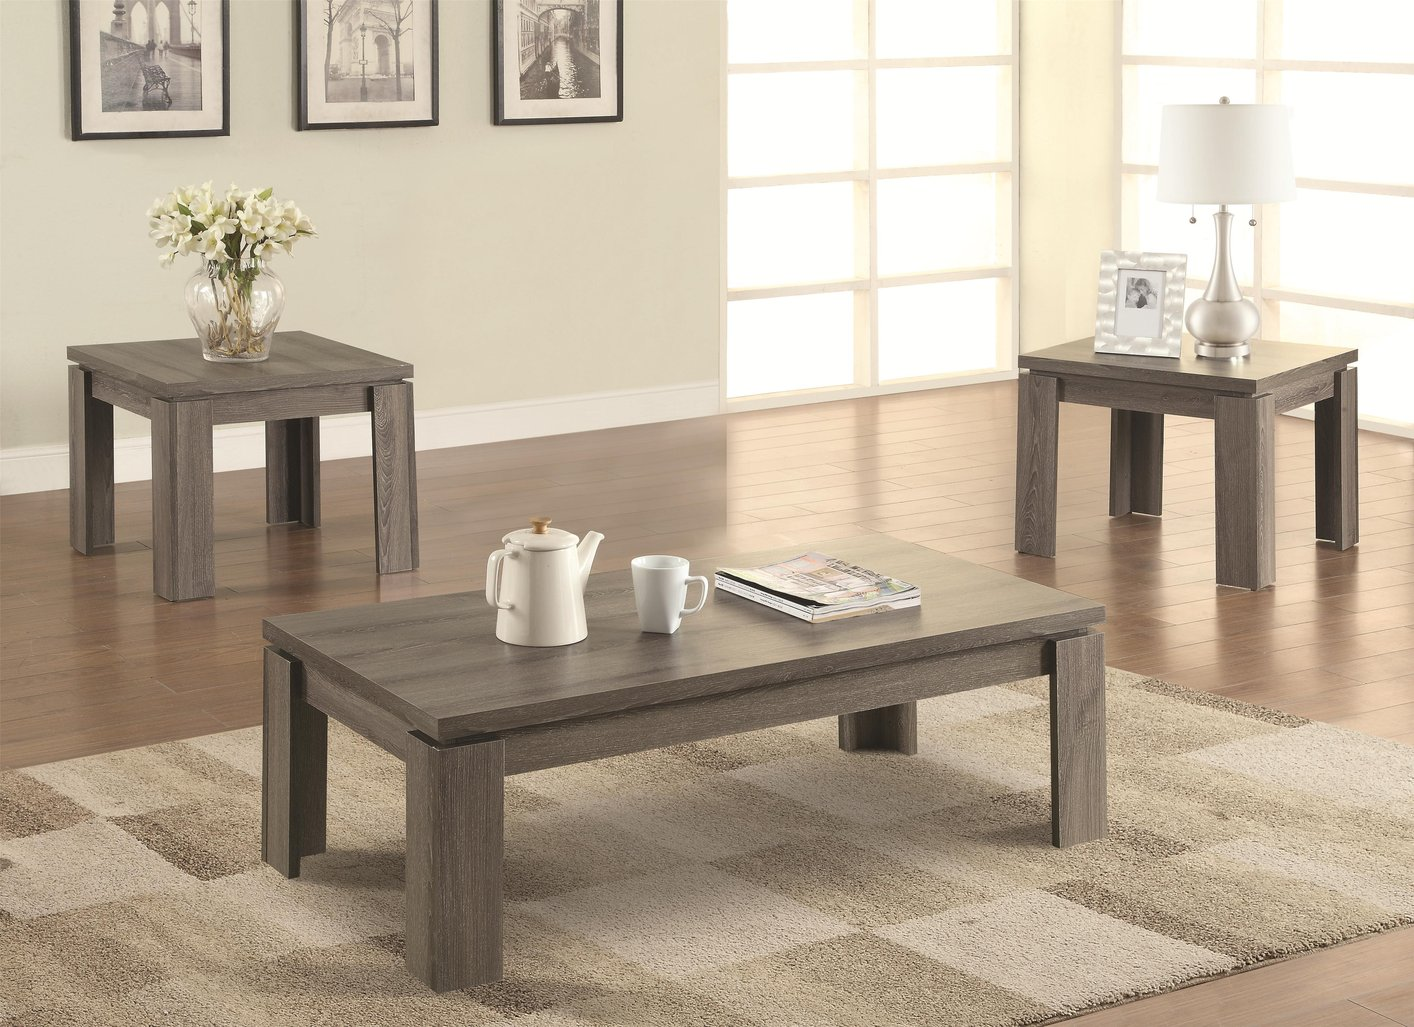 Grey Wood Coffee Table Set Coaster 701686 Grey Wood Coffee Tables Dark Grey Wood Furnish Stained Square Shape (Image 9 of 10)